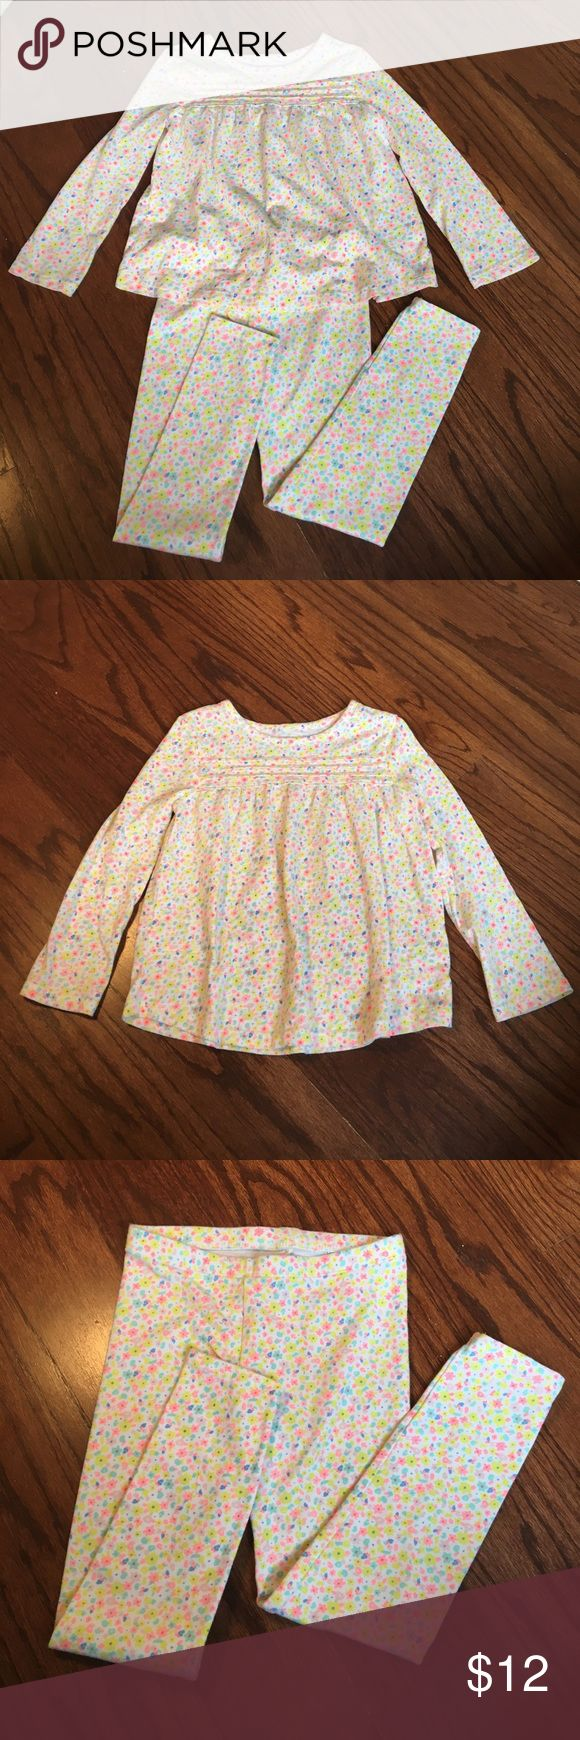 Cat & Jack Floral Top with Matching Leggings Cat & Jack Floral Top with Matching Leggings Cat & Jack Matching Sets